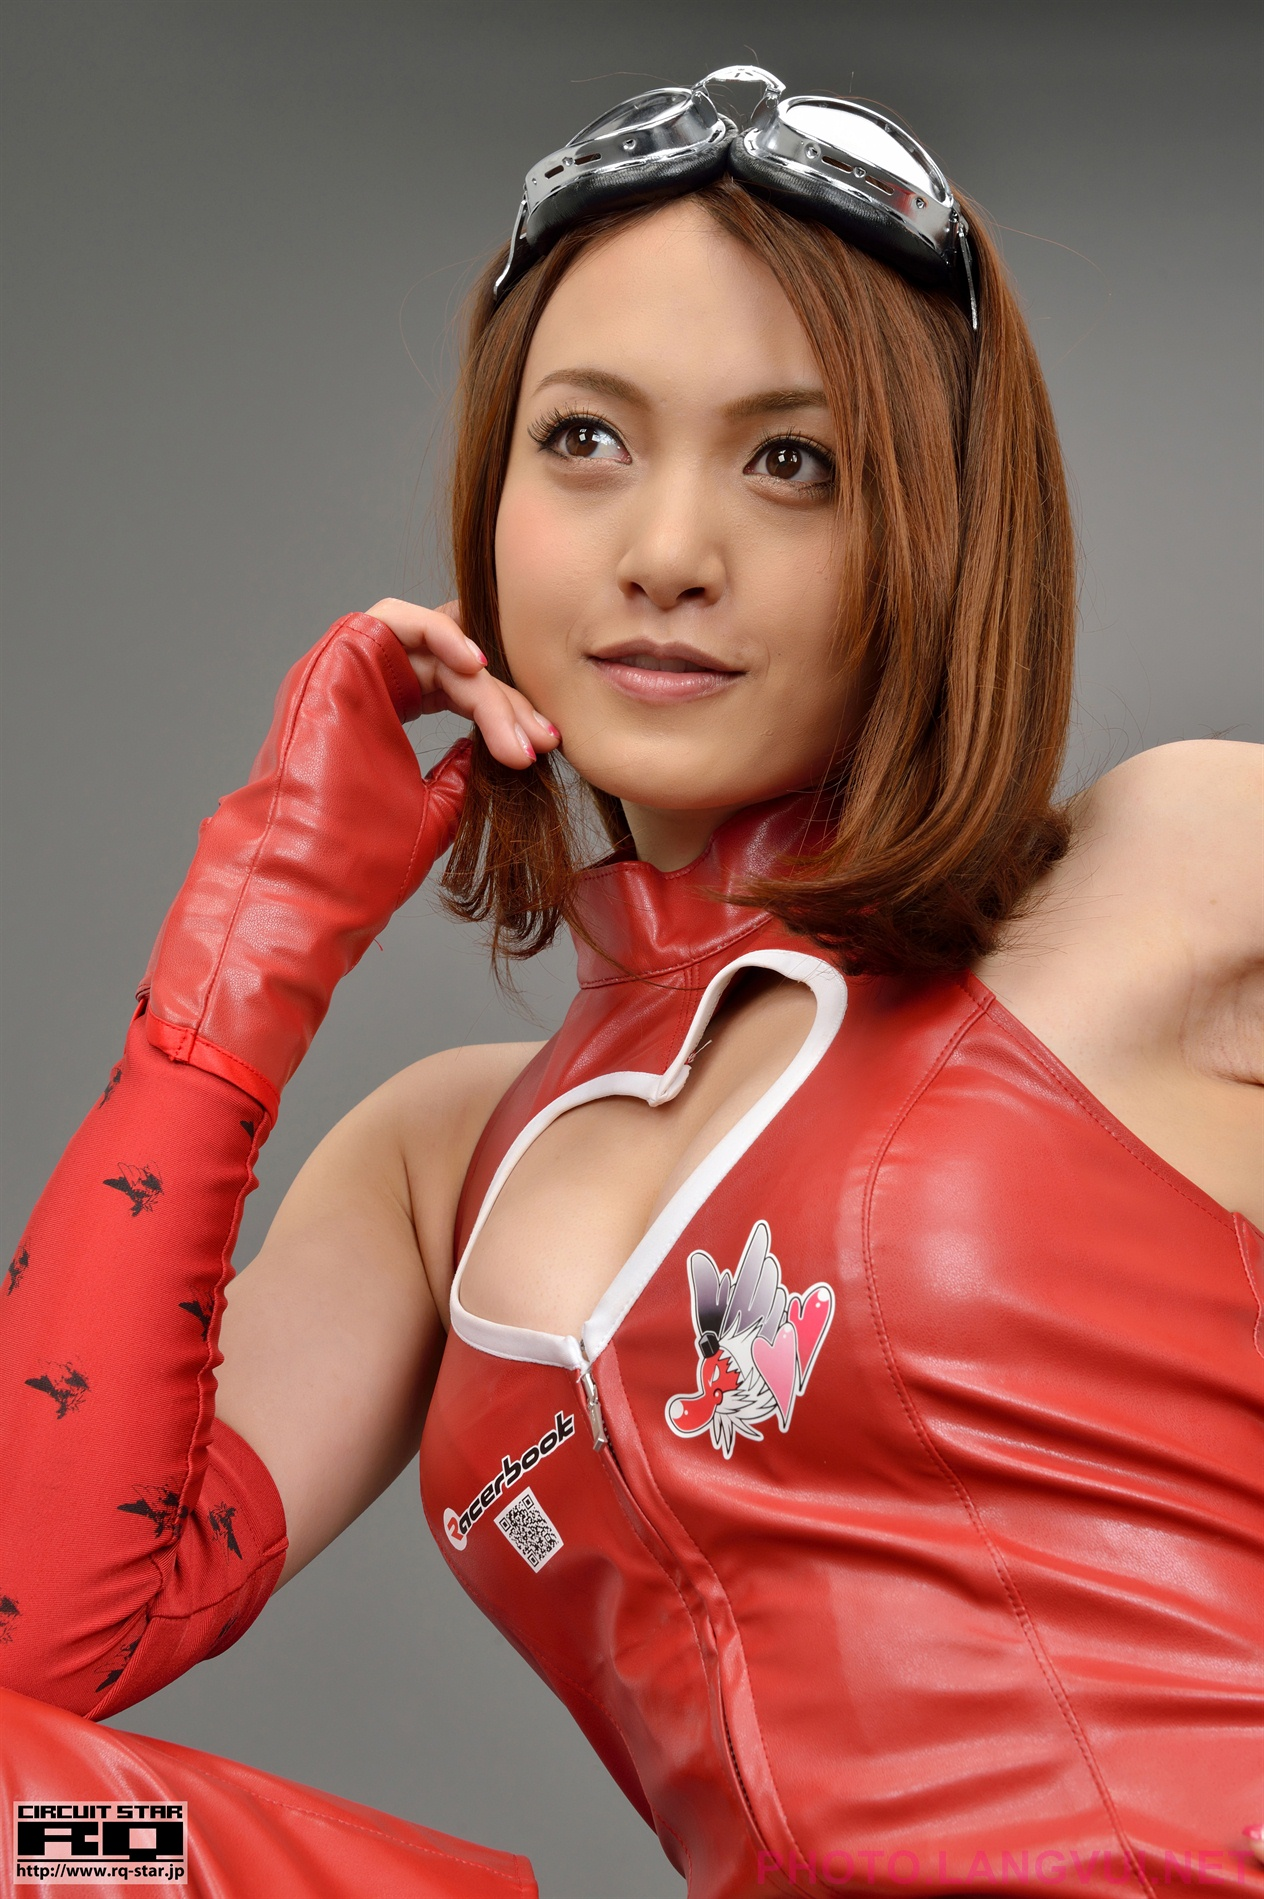 RQ STAR No 01033 Rina Itoh Race Queen - Page 10 of 14